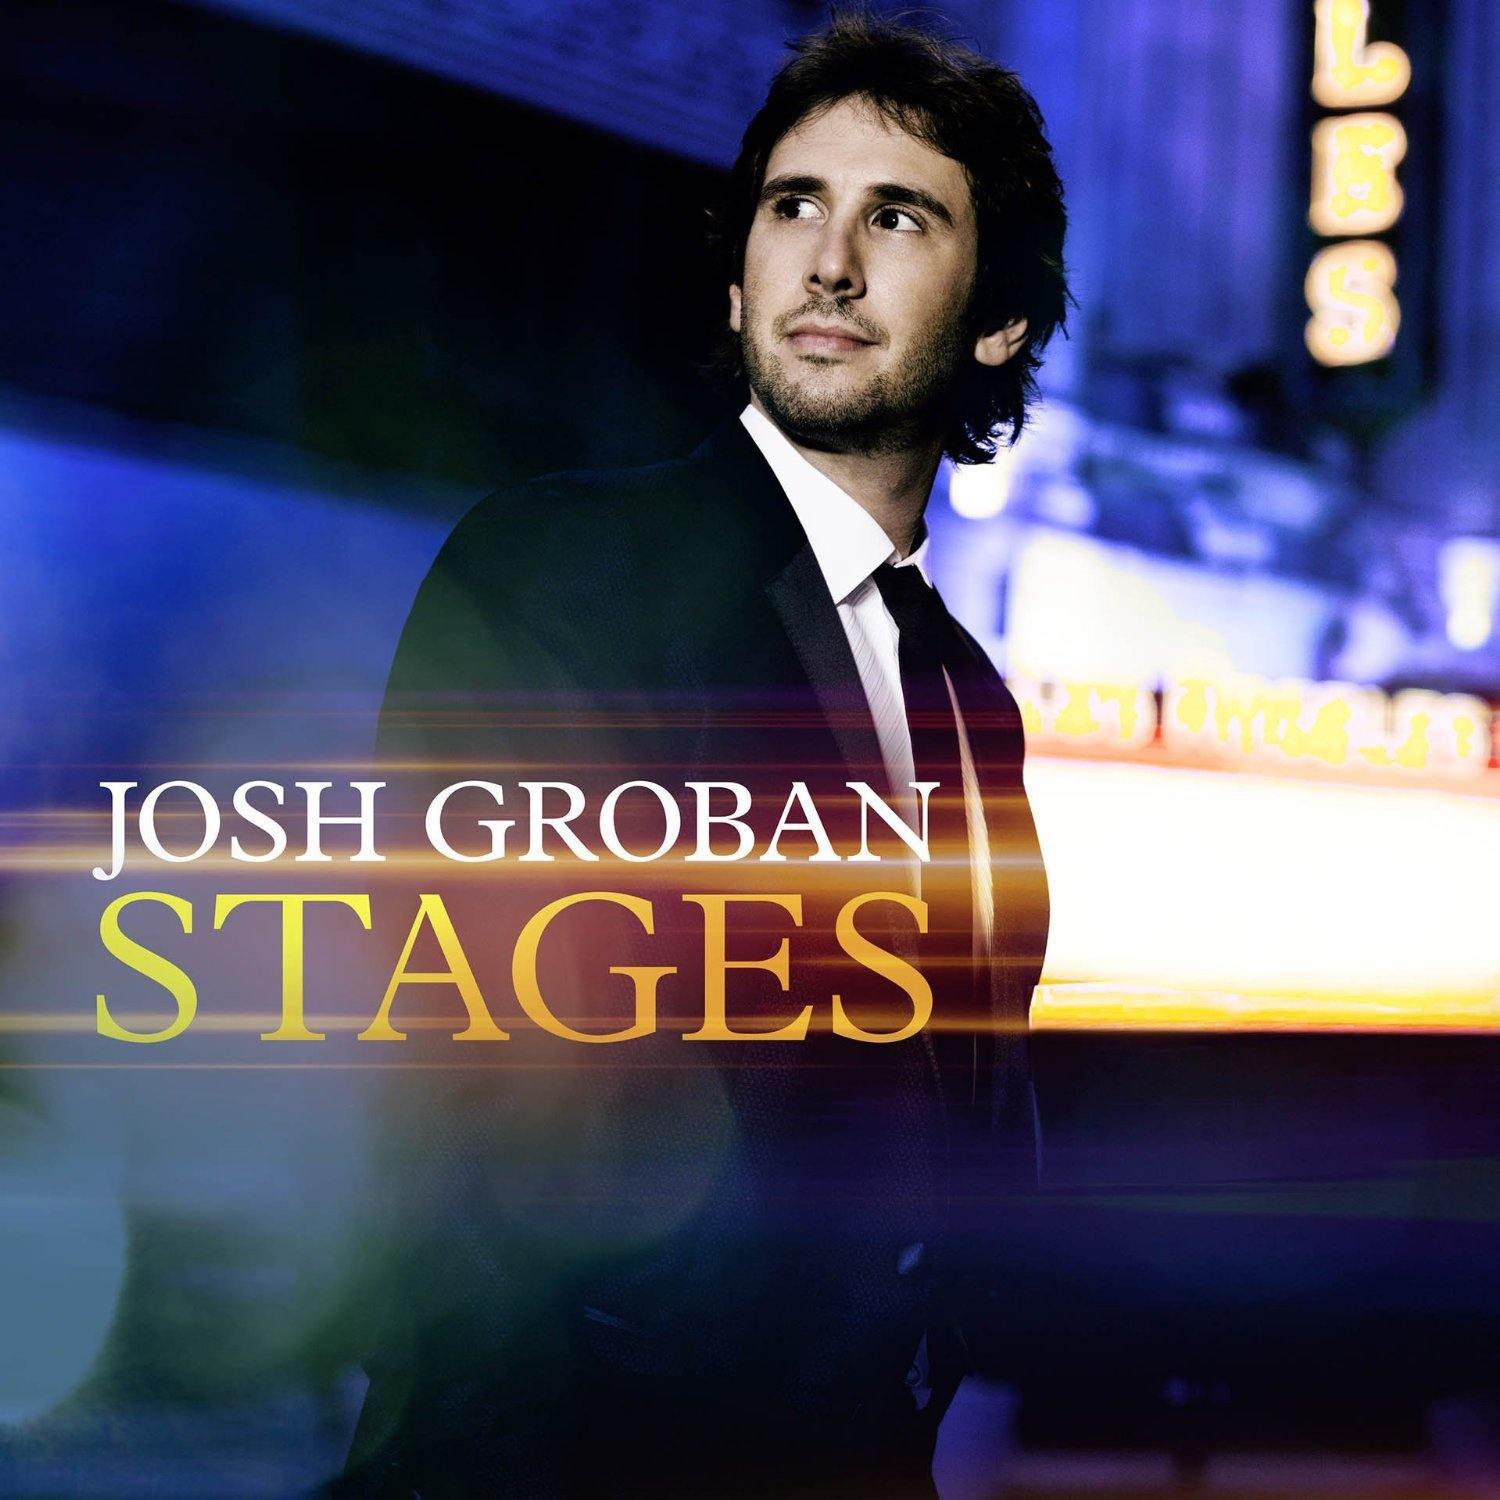 Stages by Josh Groban: Amazon.co.uk: Music